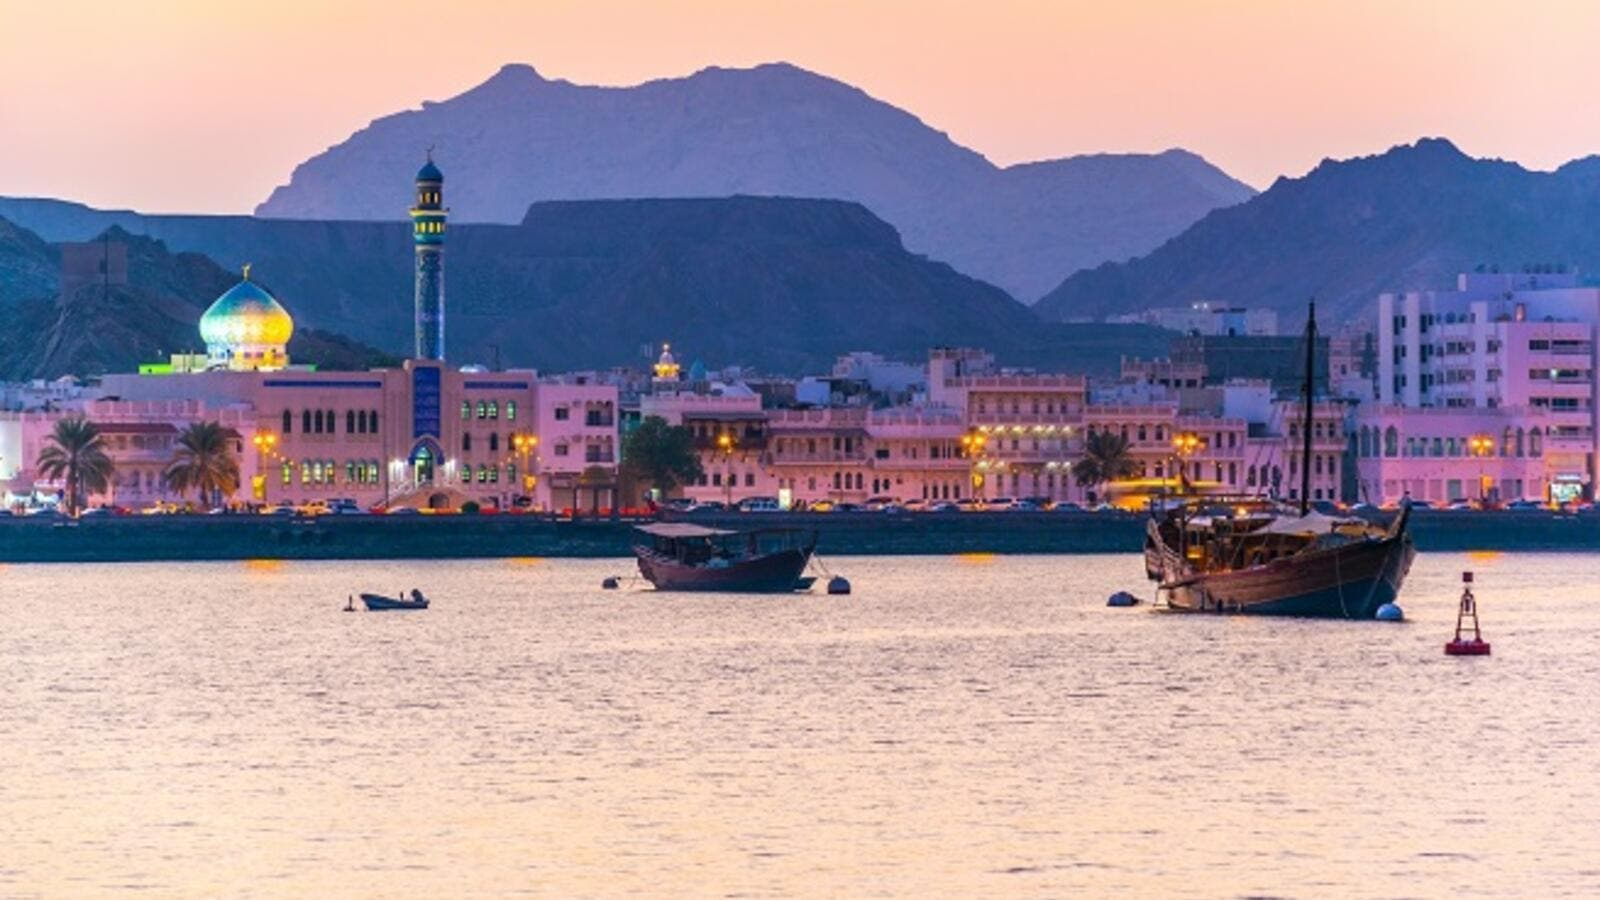 Remittances in Oman have dropped this year, as numbers of expats in the country continue to decline. (Shutterstock)